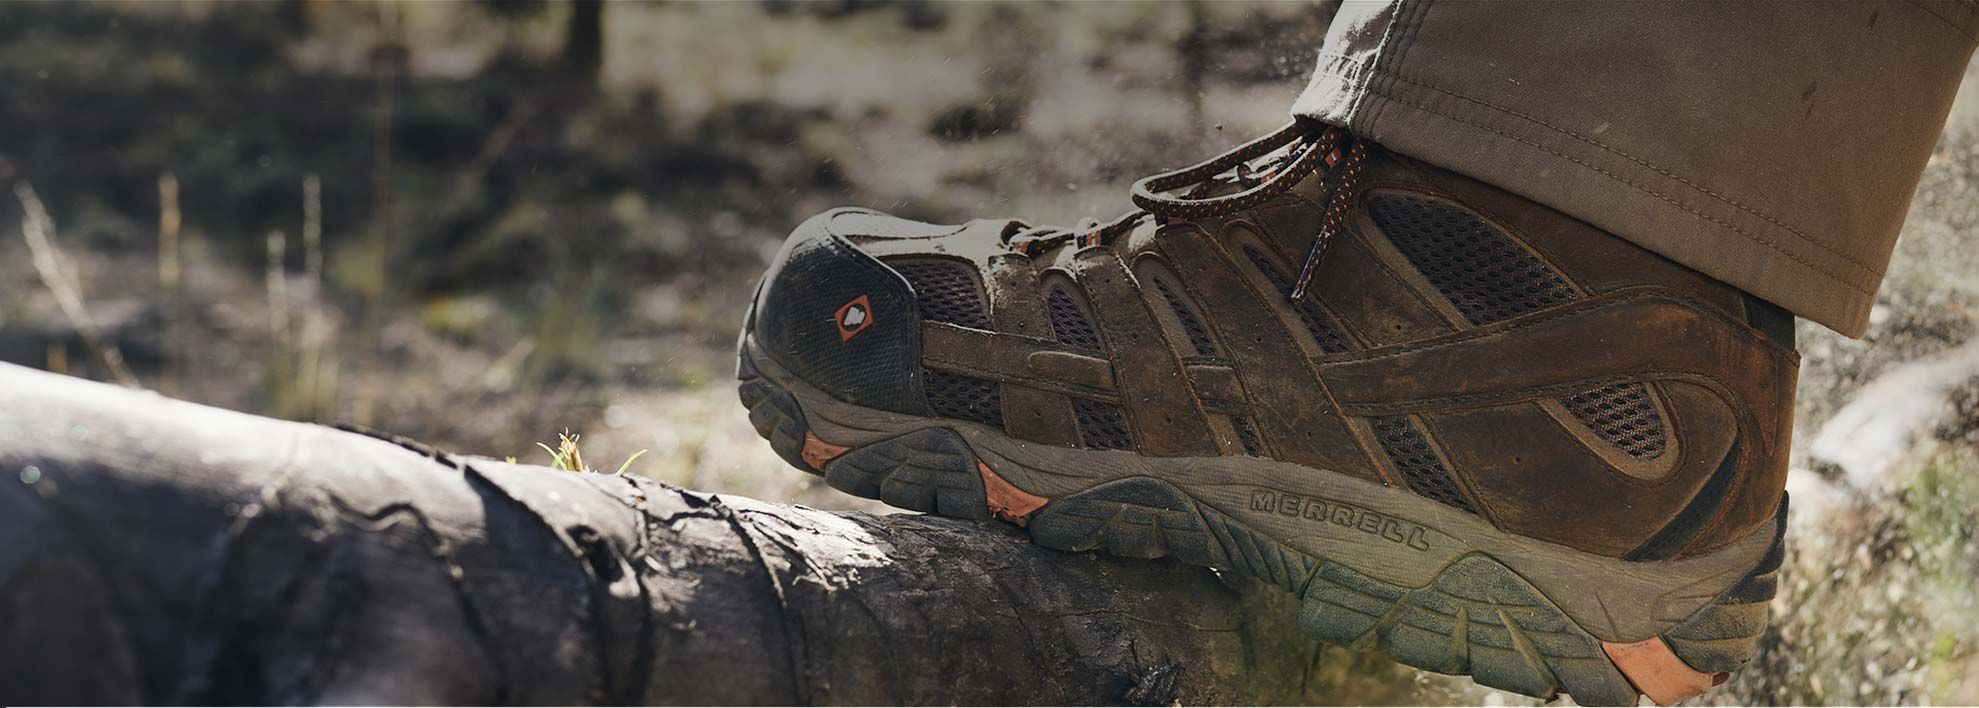 b33ef2dbed Work Boots & Shoes: Composite Toe Work Boots | Merrell